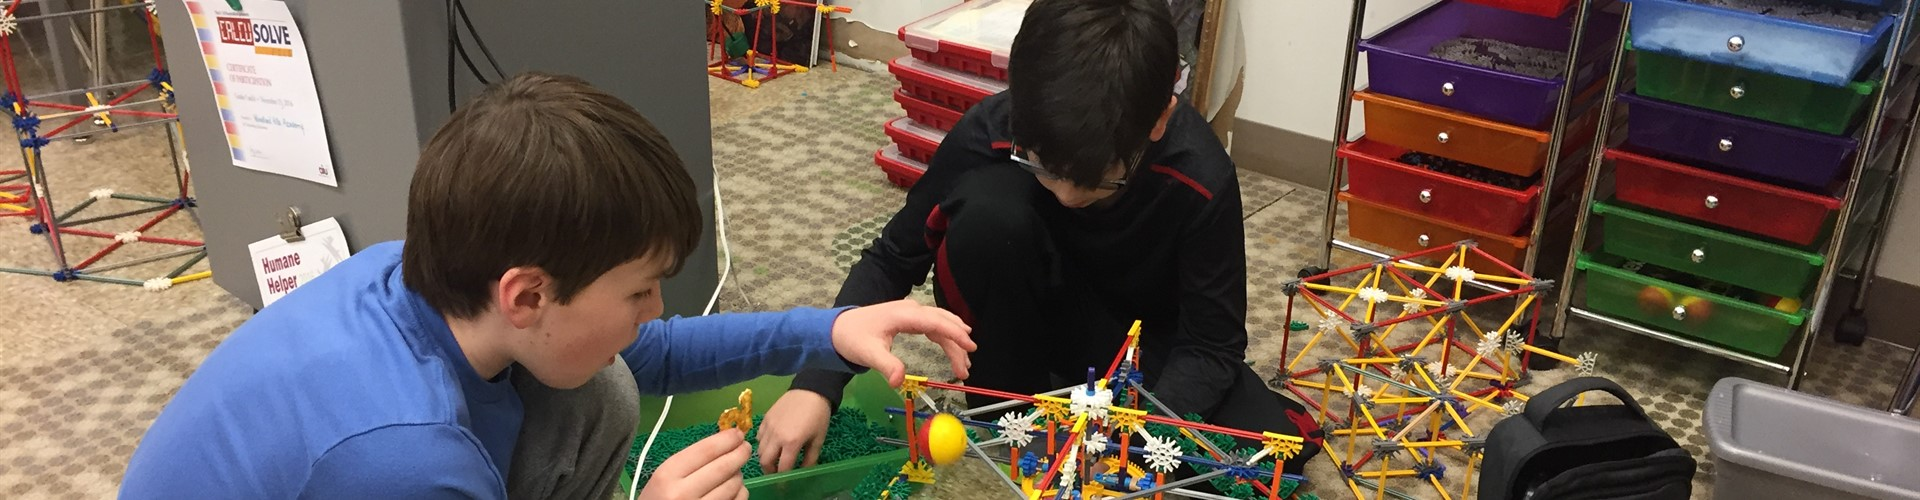 Gifted students prepare for K'Nex competition.